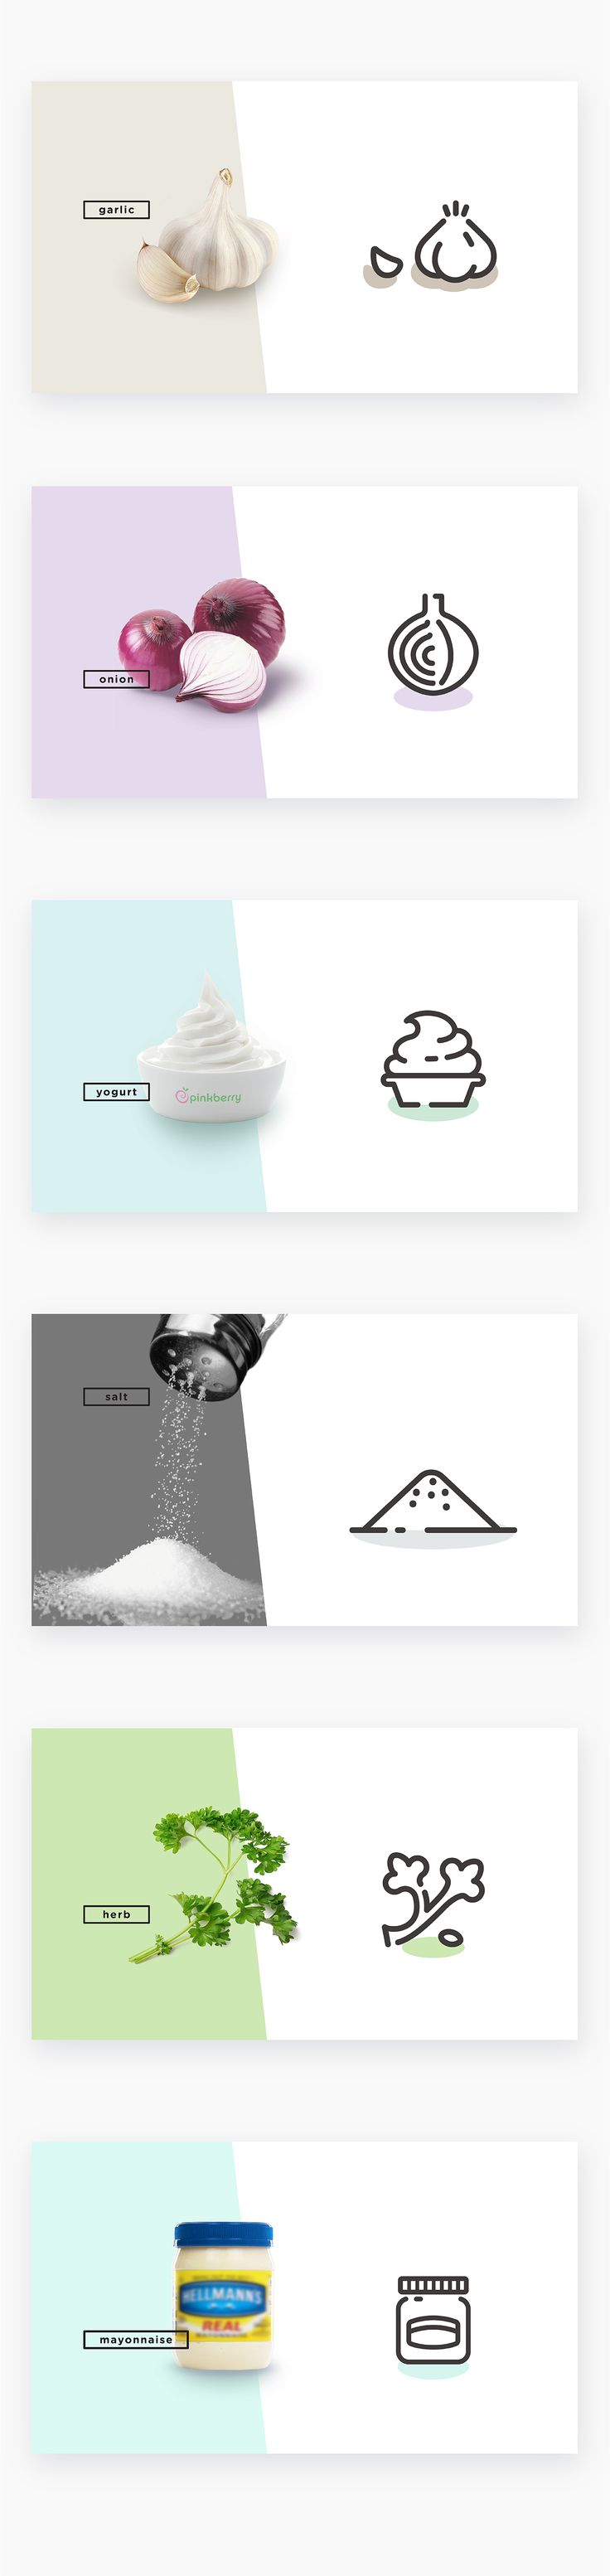 Play With Ingredients on Behance